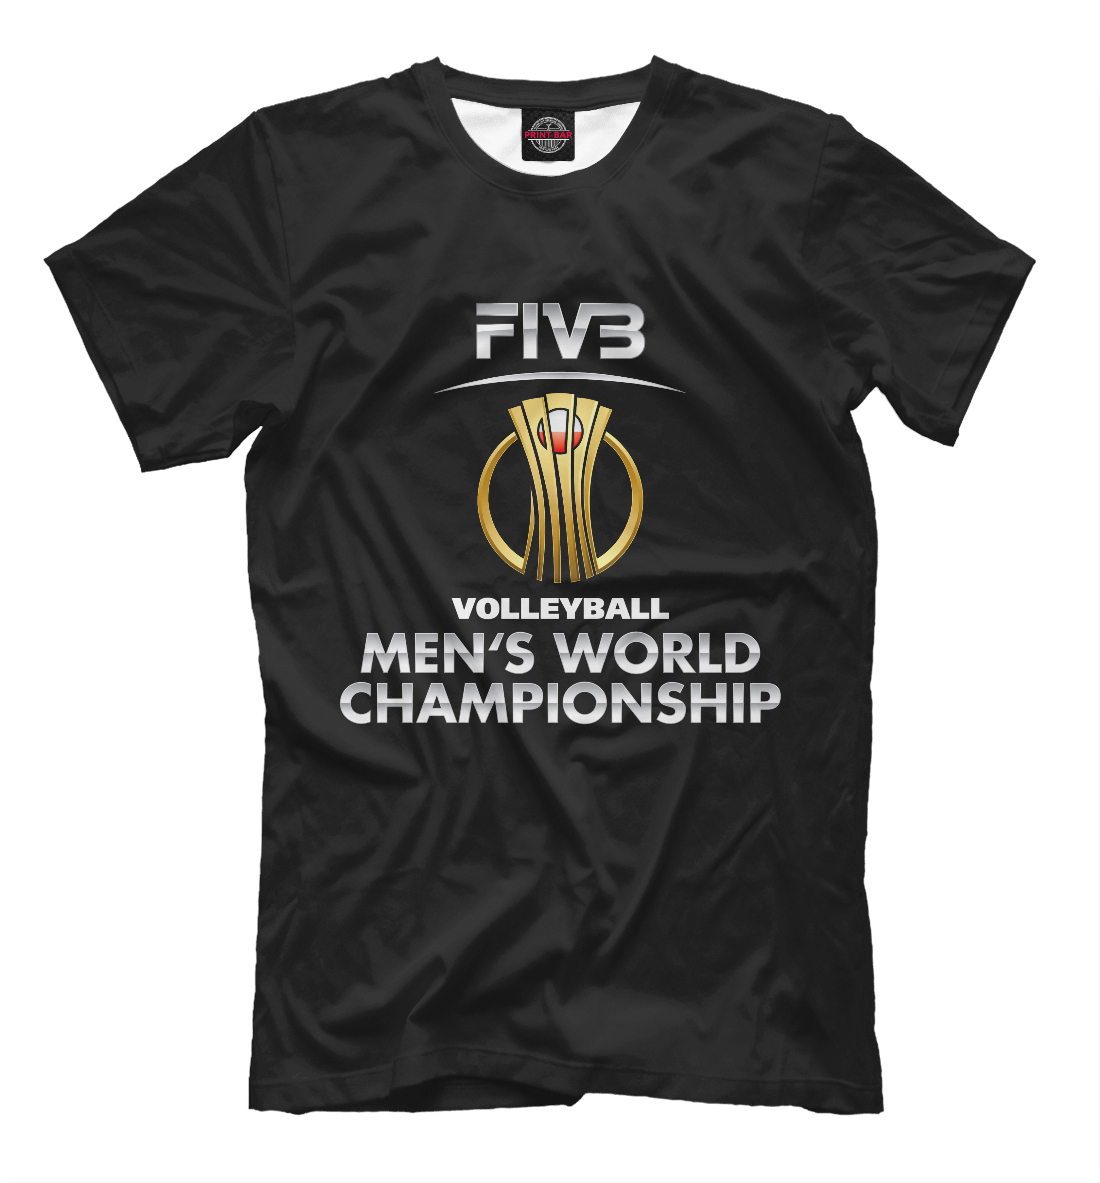 Купить FIVB (Federation internationale de volleyball), Printbar, Футболки, VLB-335856-fut-2